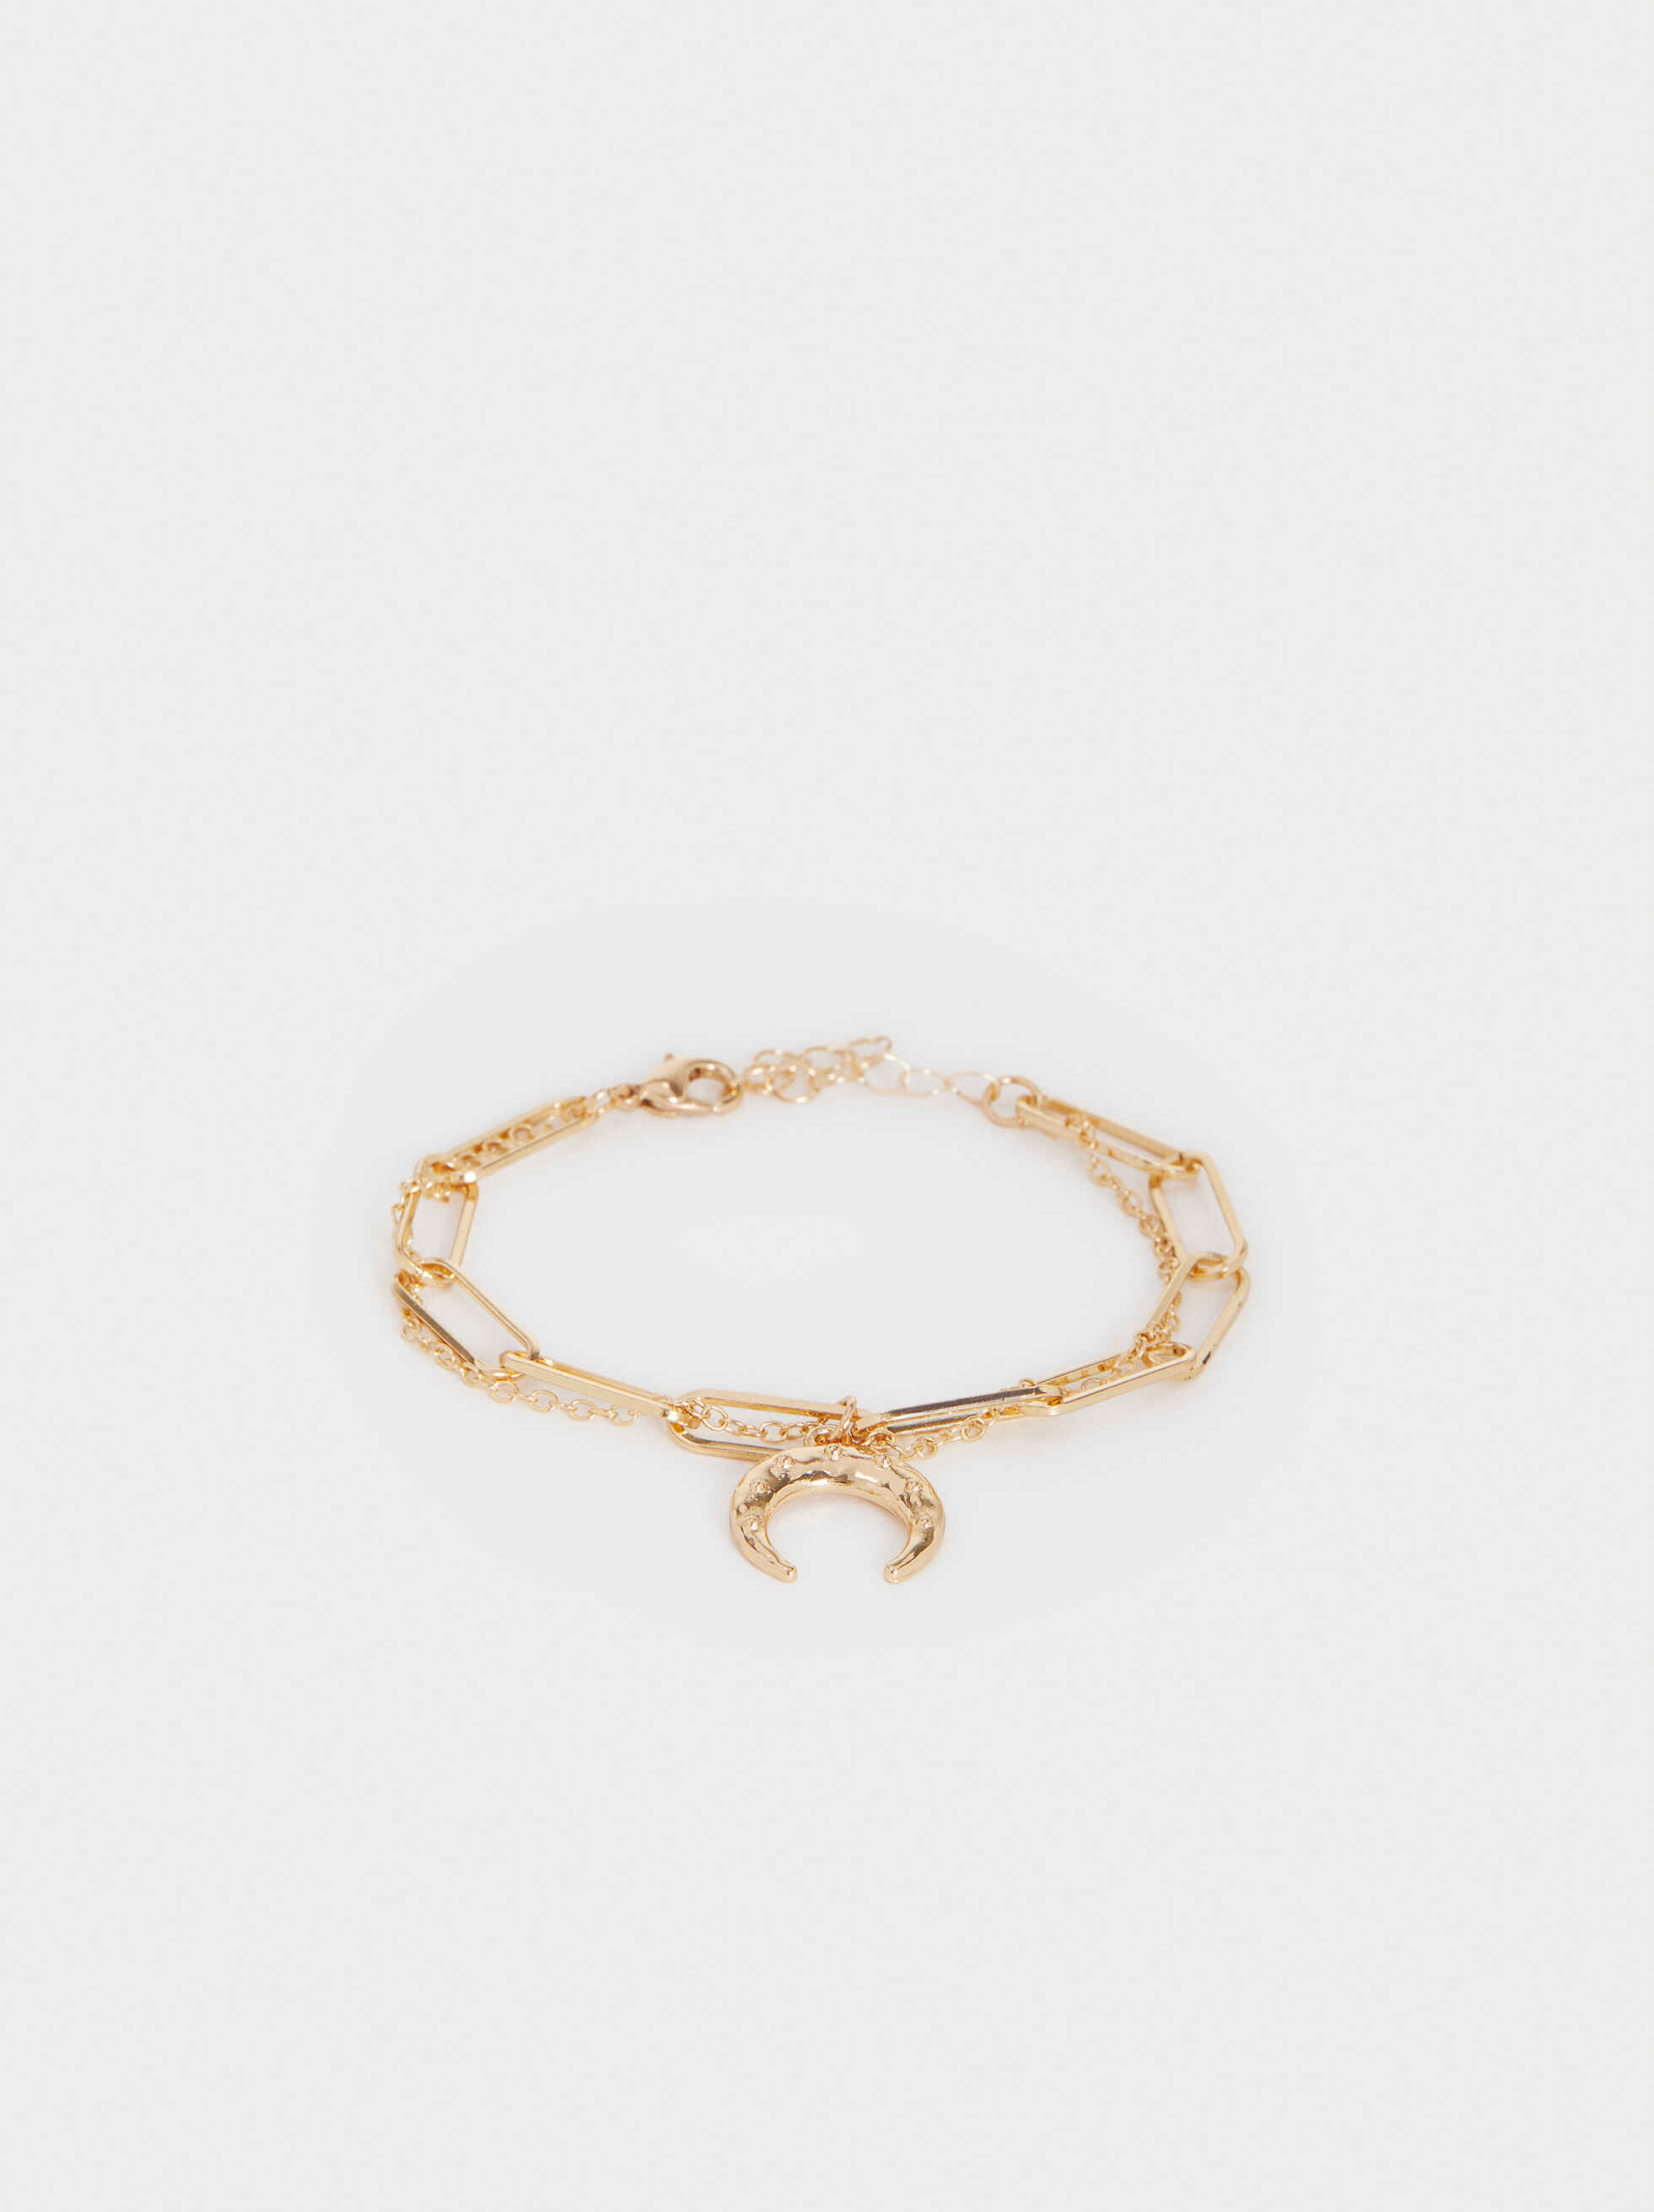 Gold Bracelet With Crescent Charm, Golden, hi-res